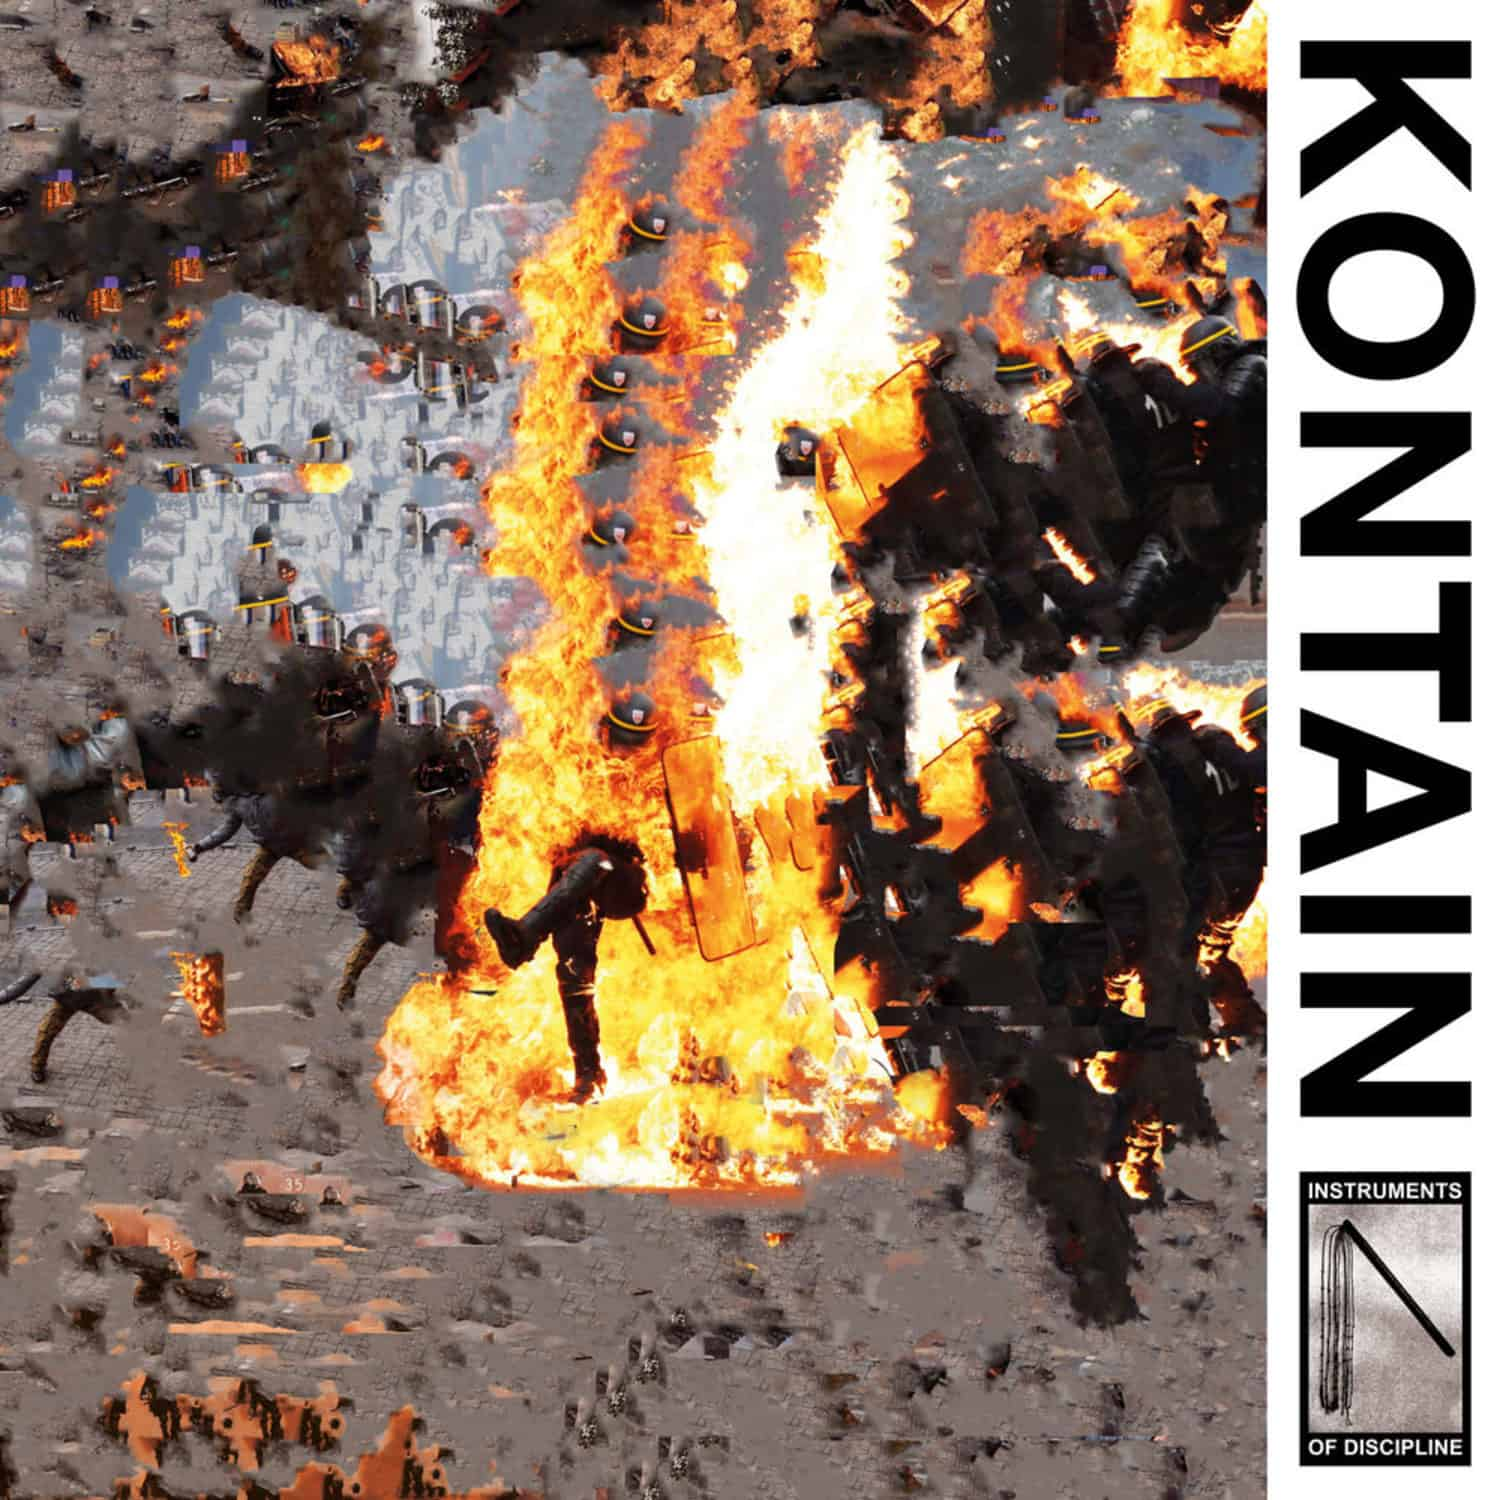 Kontain - YOUR JOB IS TO MAKE ART